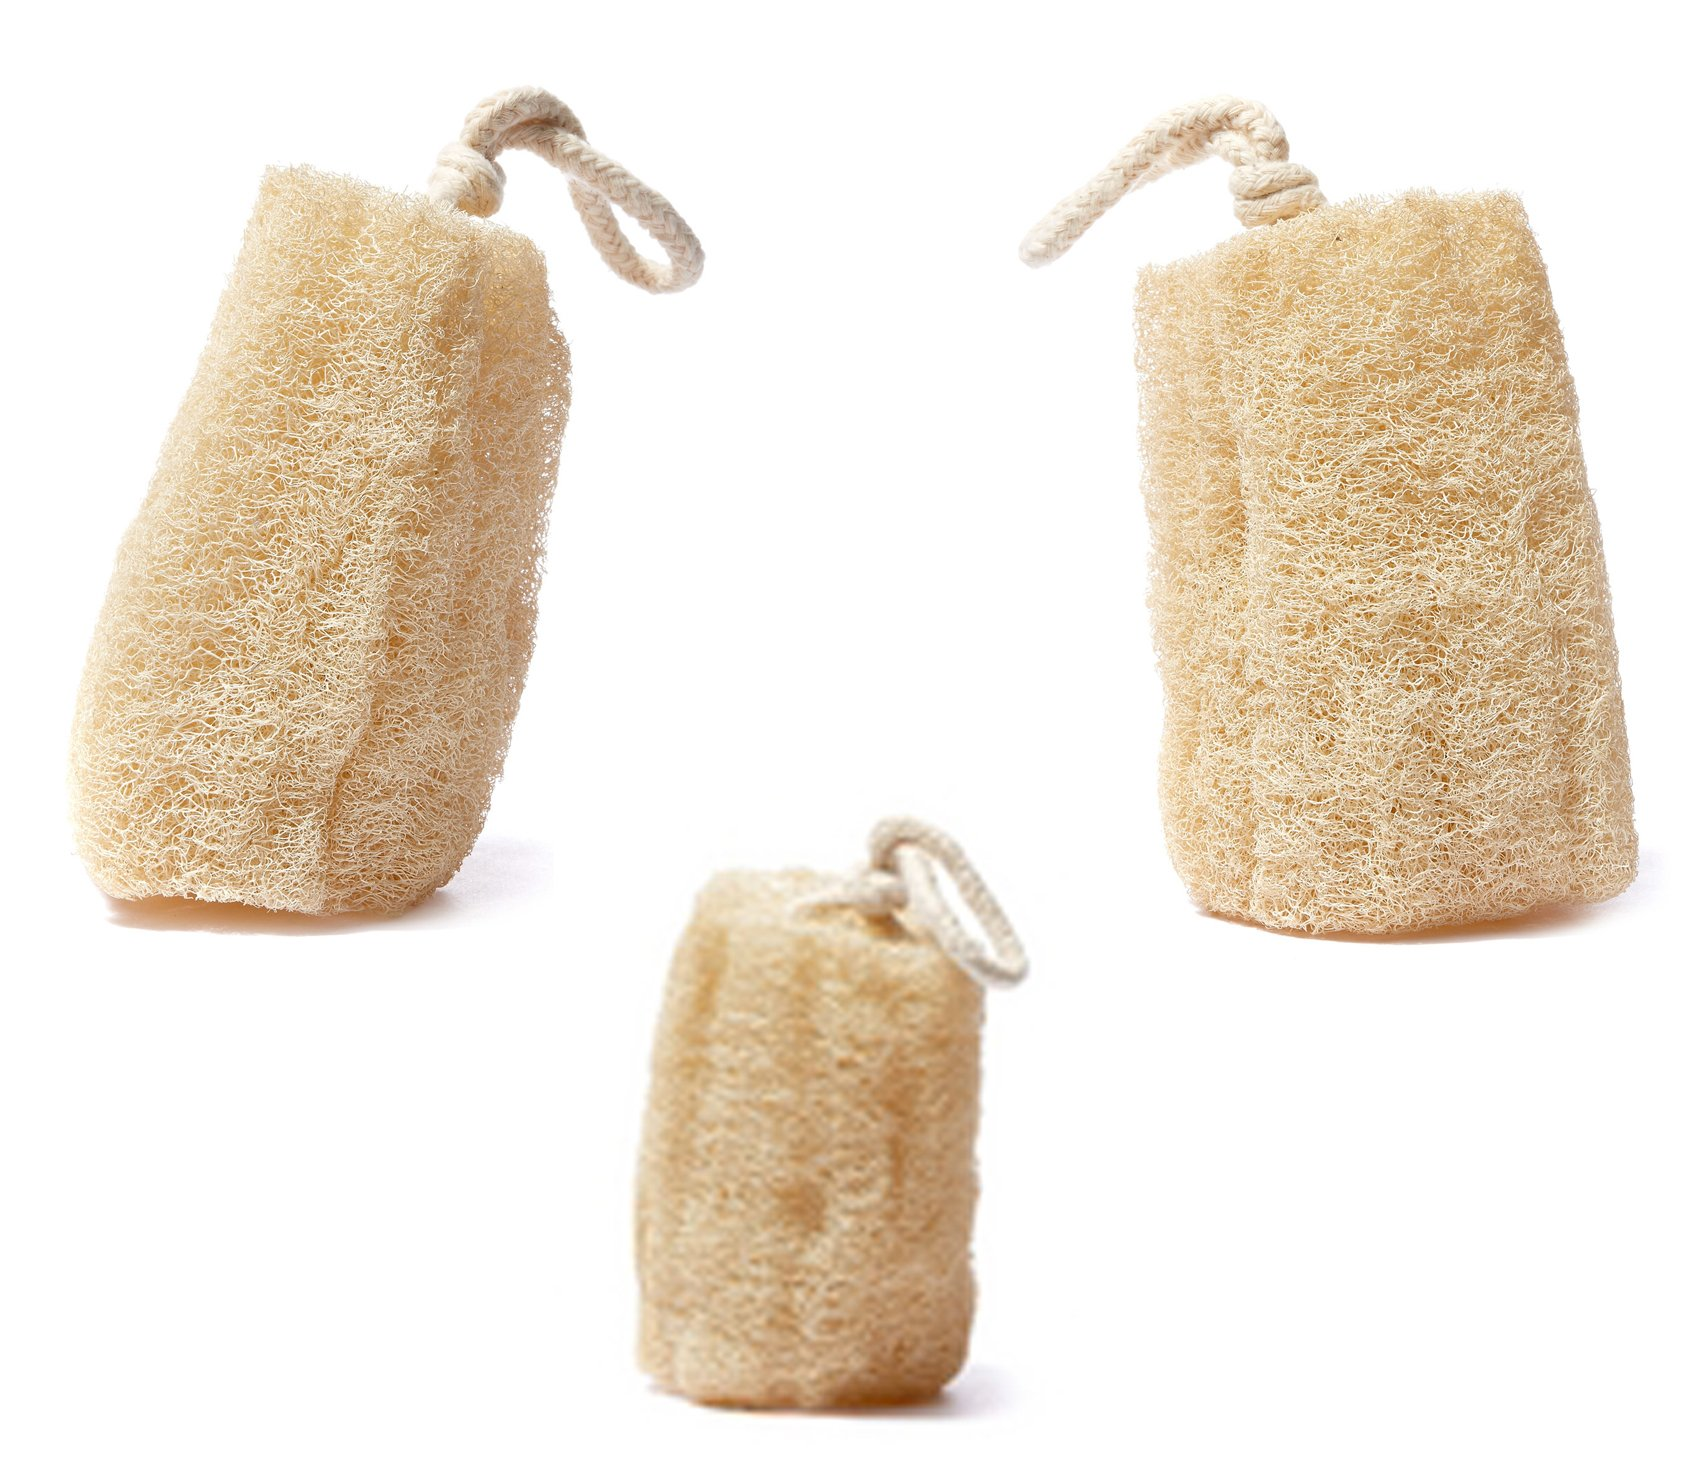 Set of 3 Luxurious 100% Natural Spa Beauty Egyptian Organic Loofah Bath Sponge Body Scrubber. Premium Quality Lofa Loofa Luffa Loffa for Exfoliating Your Skin